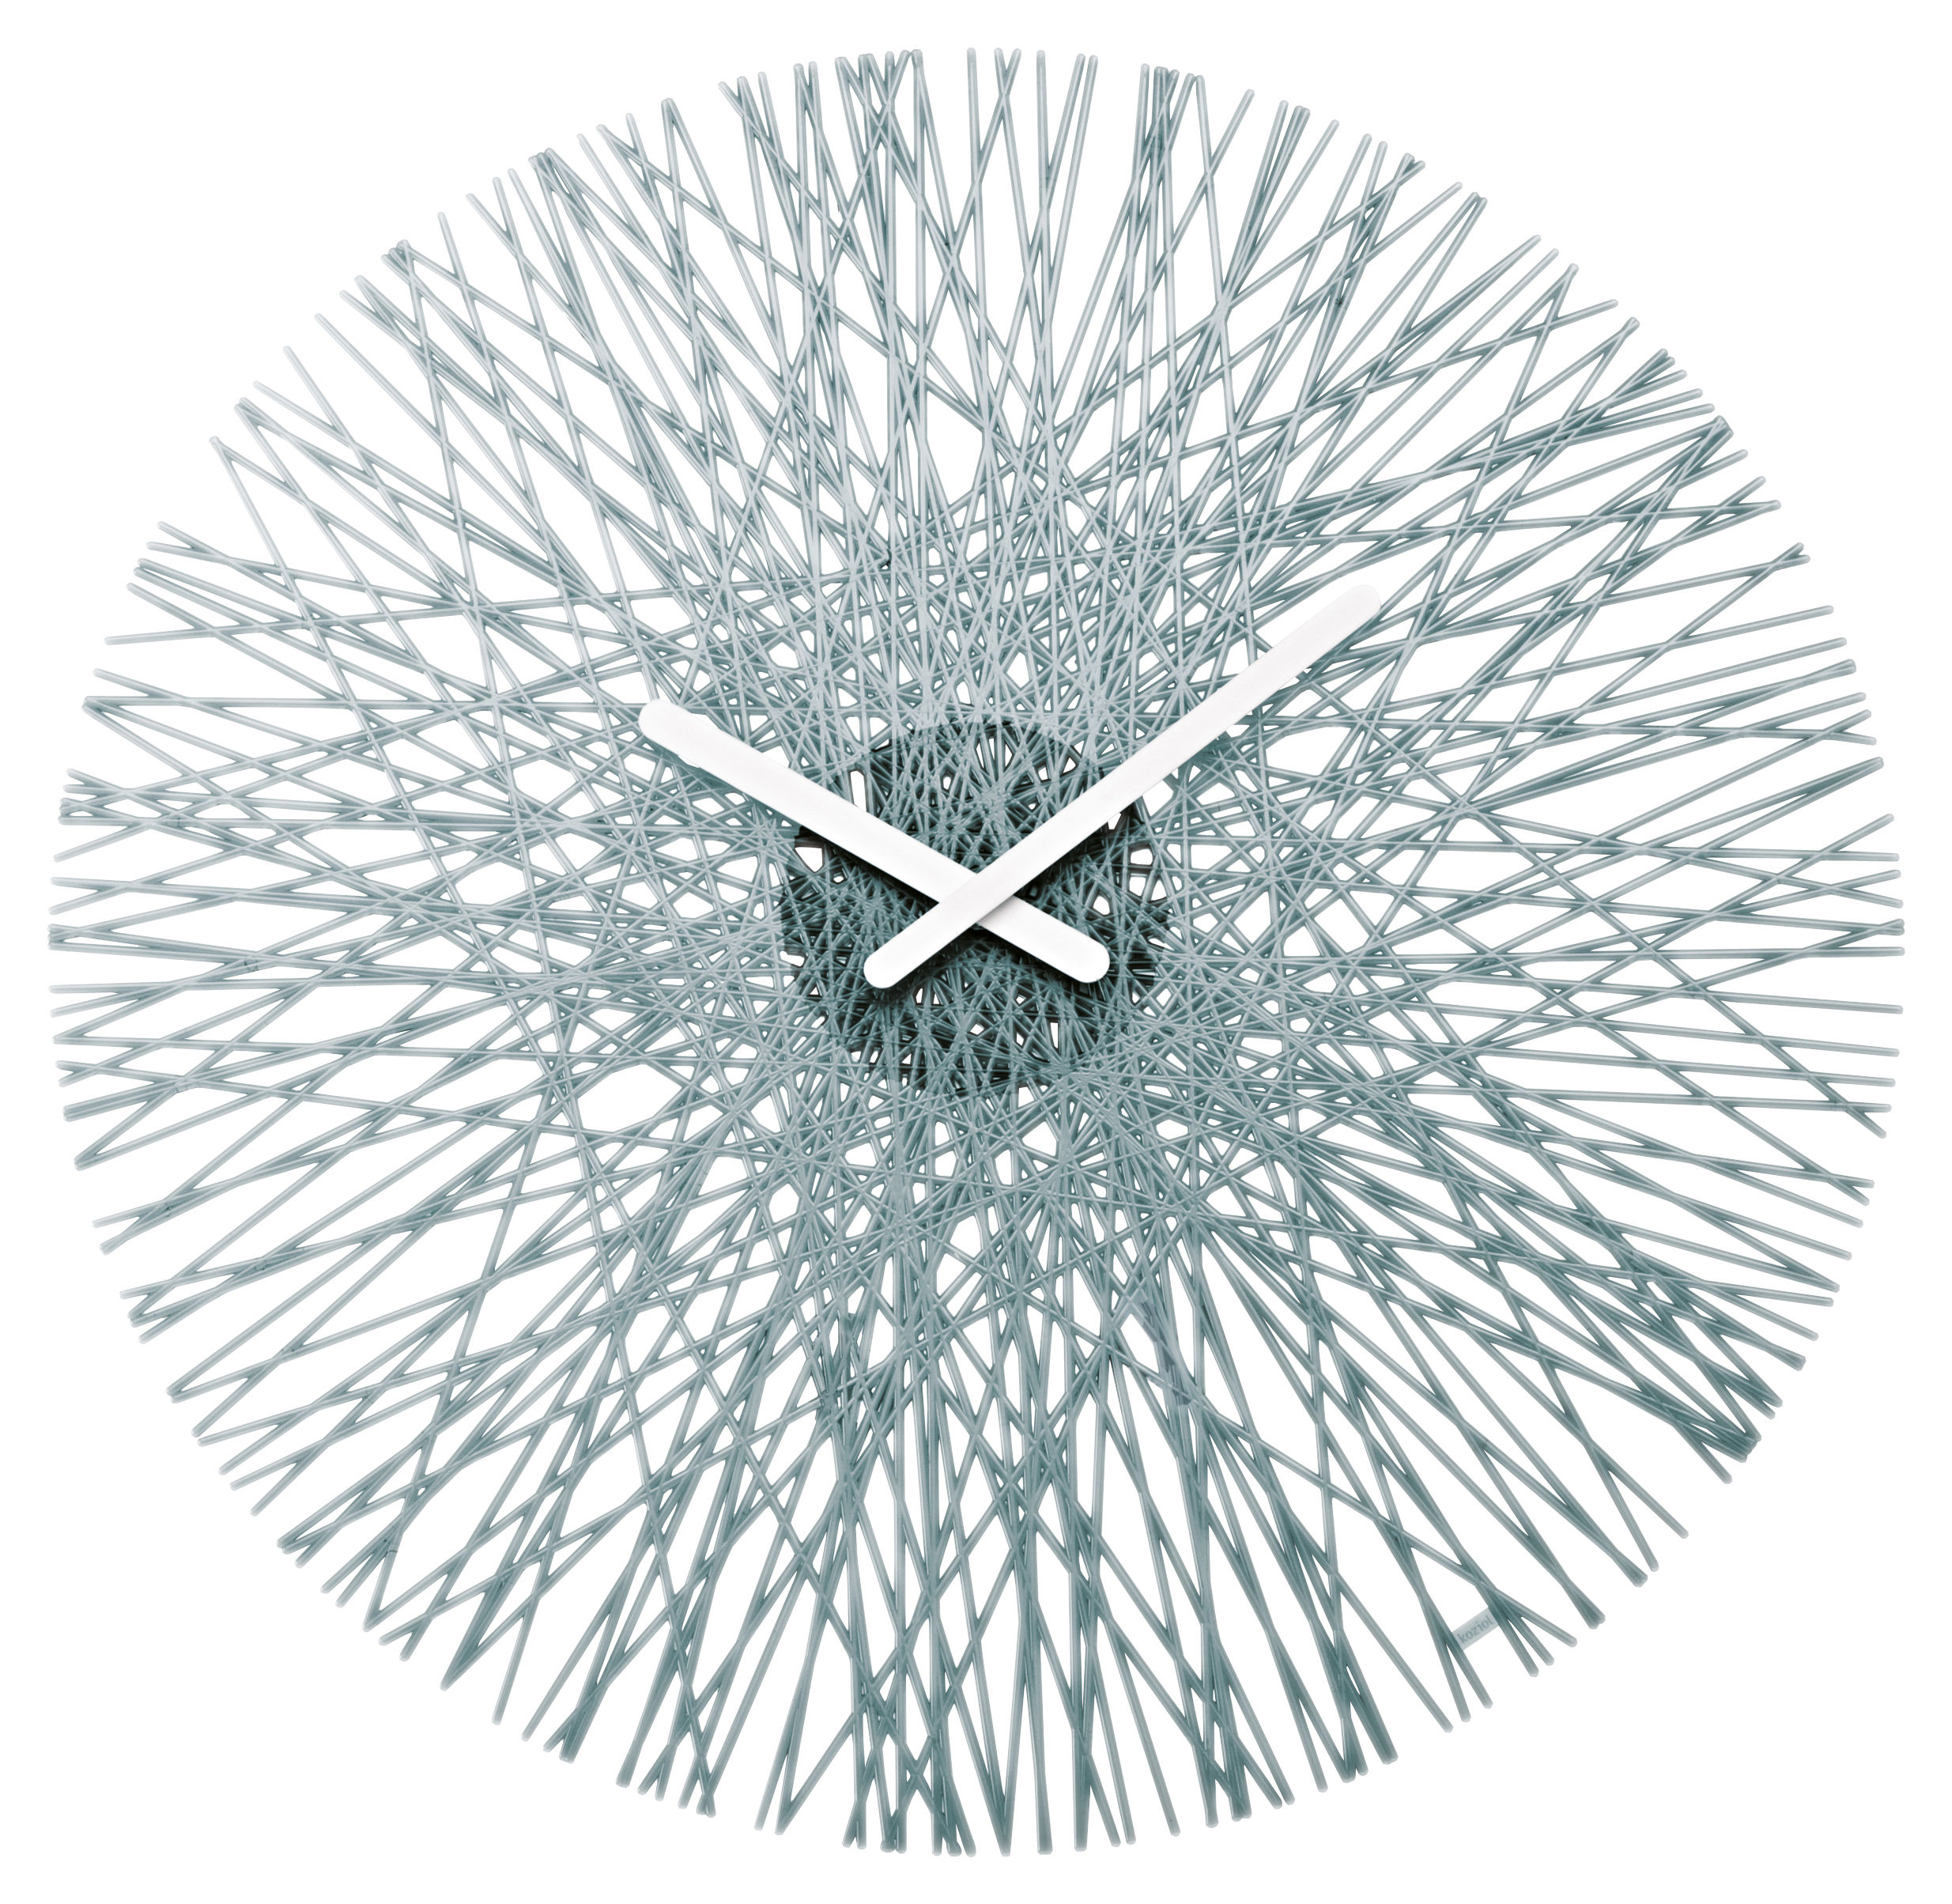 Decoration - Wall Clocks - Silk Wall clock by Koziol - Transparent anthracite - Polycarbonate